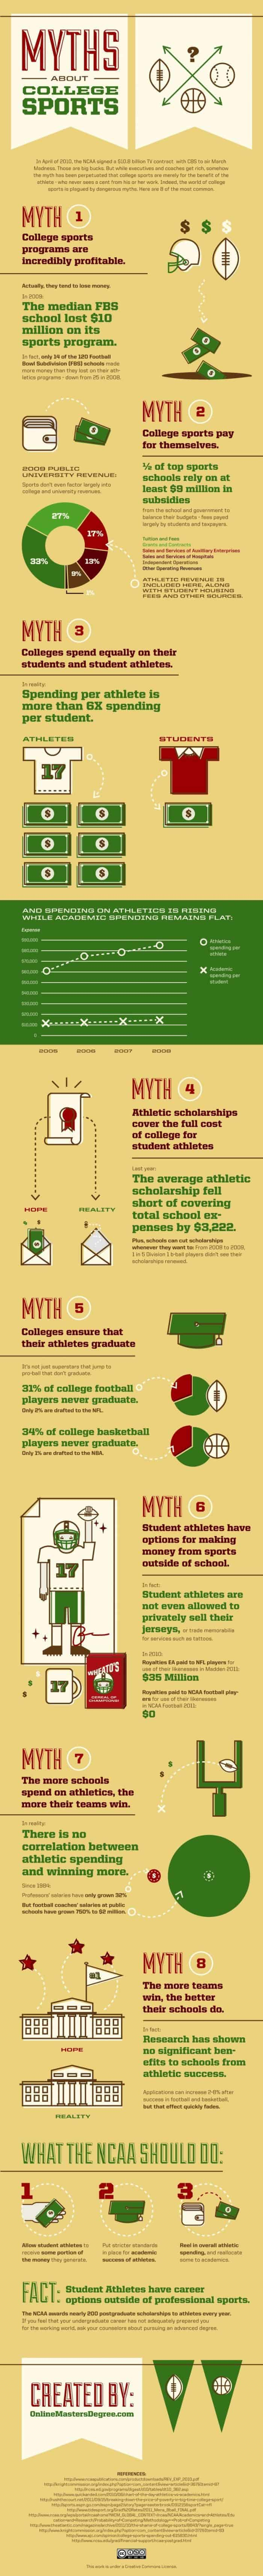 Myths About College Sports